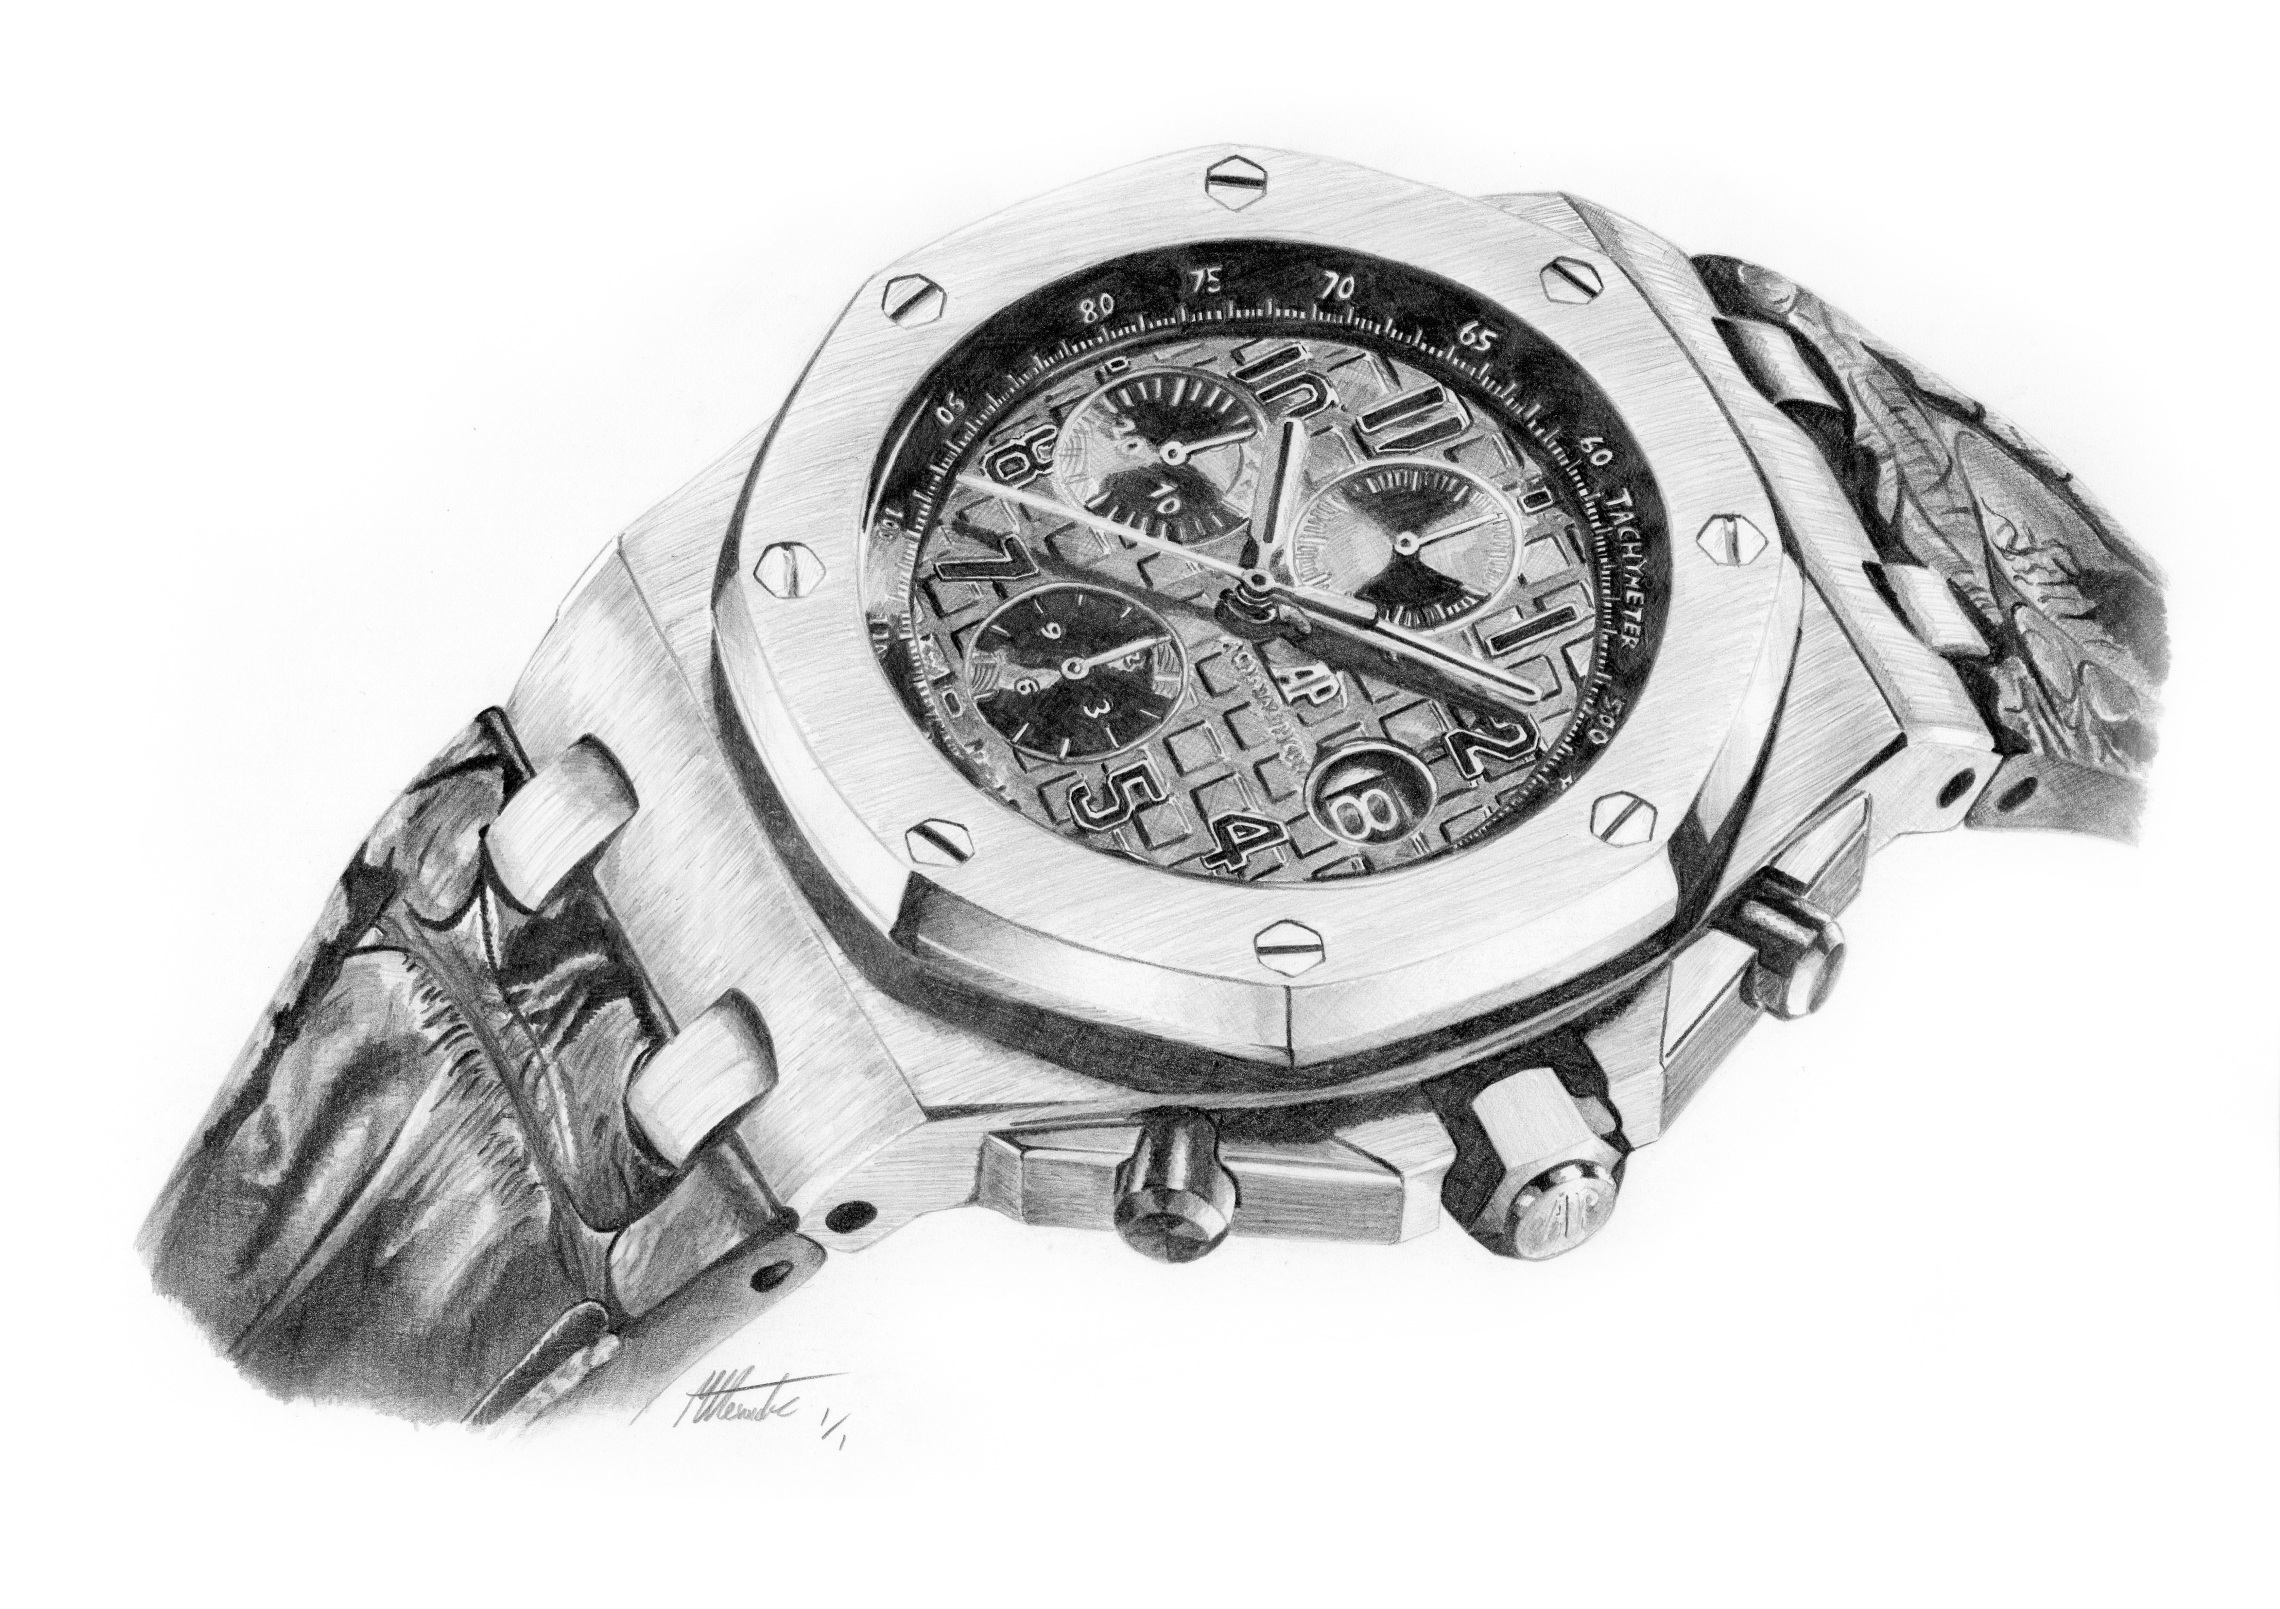 Audemars Piguet Royal Oak (Artwork)